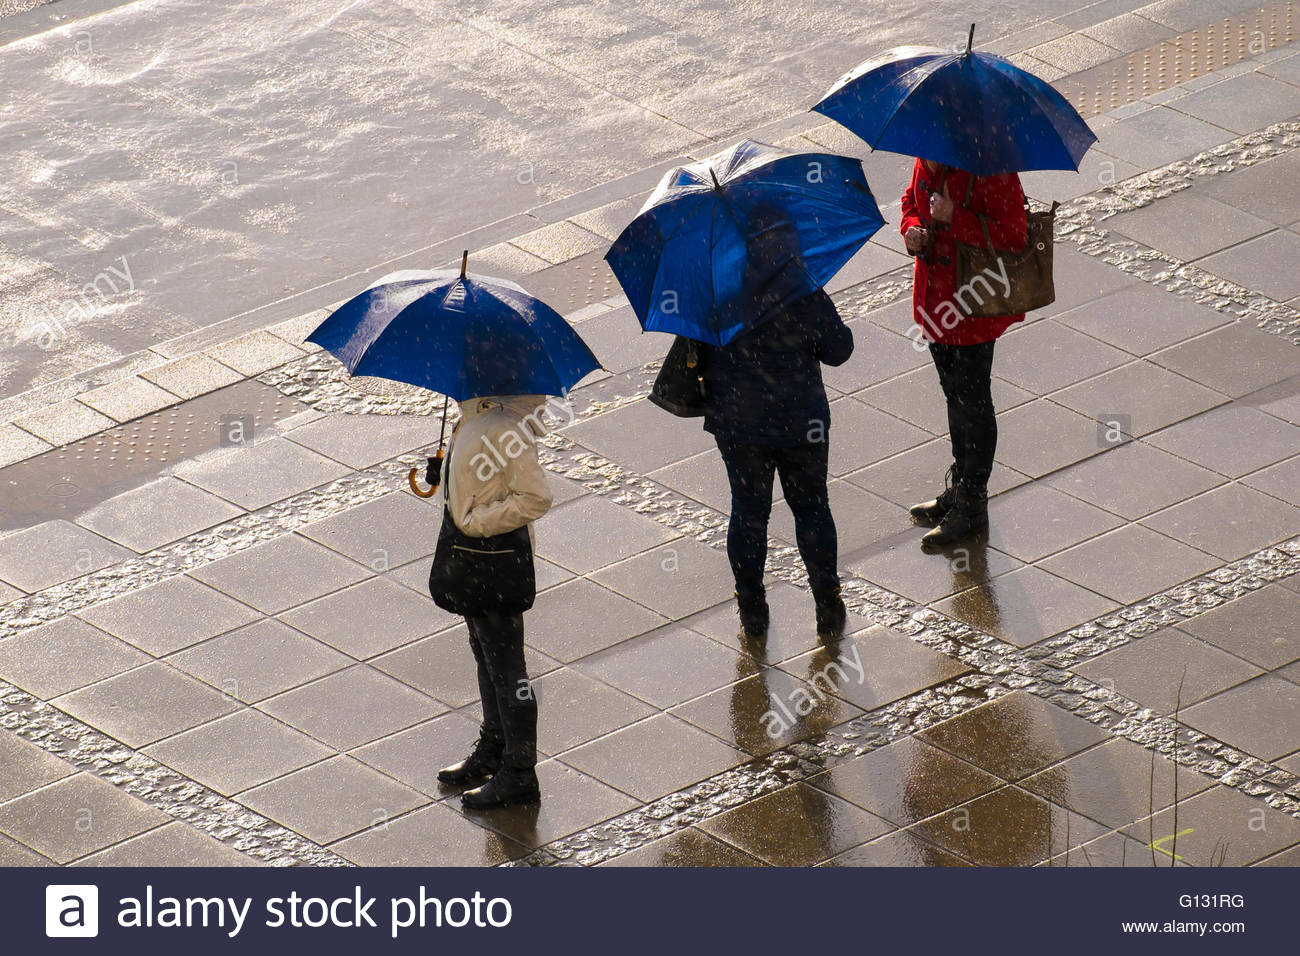 Three women with same blue open umbrellas standing on a stone pavement under rain and sun (seen from above, no faces) - Stock Image